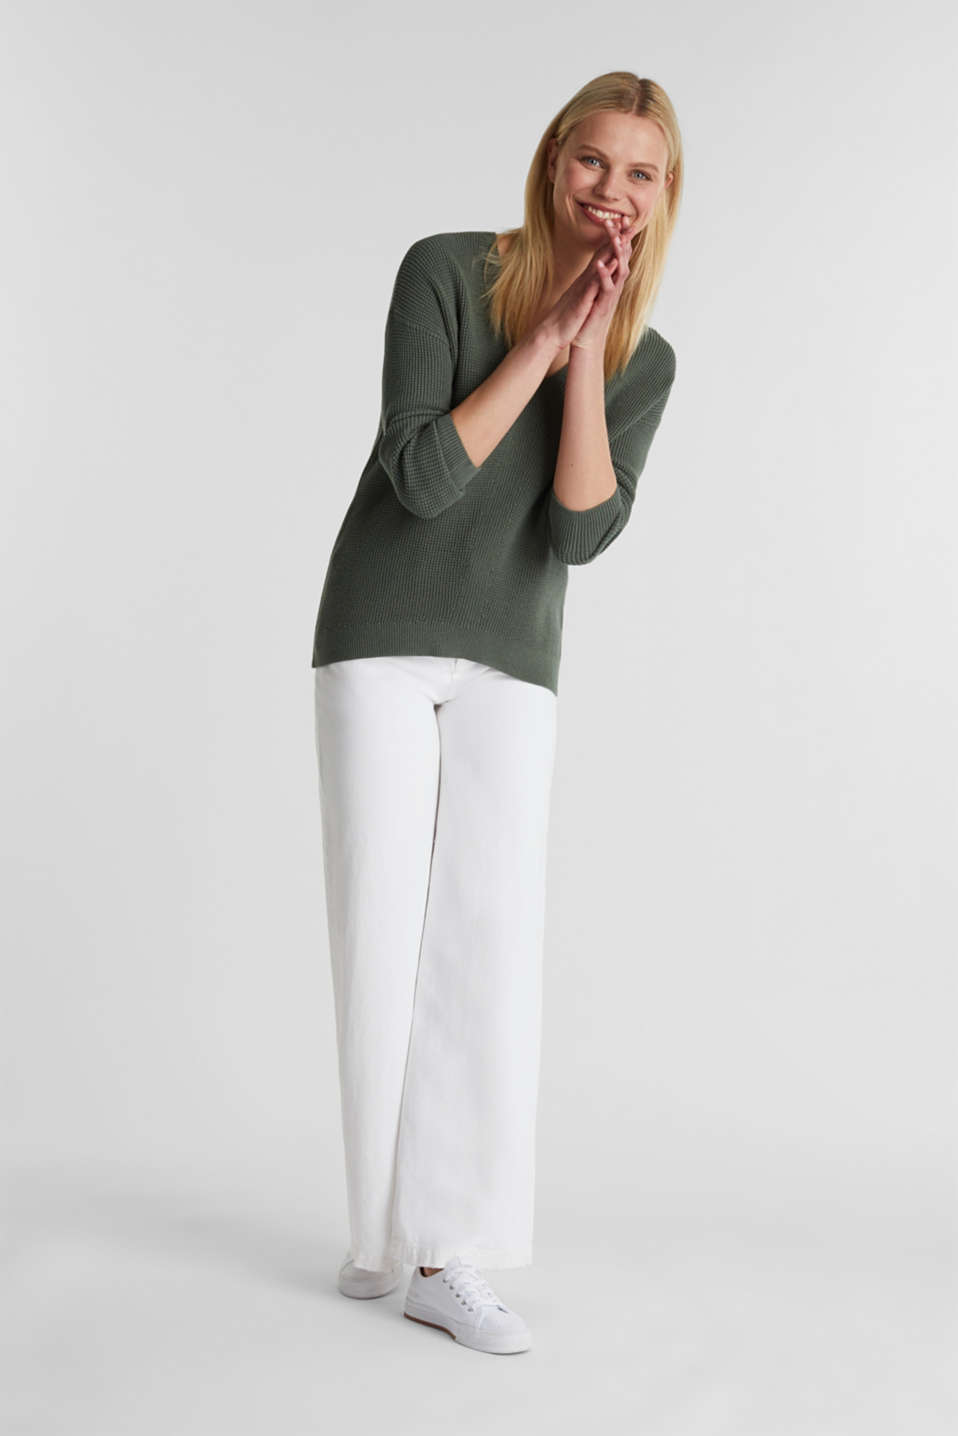 Jumper with a rice grain texture, KHAKI GREEN, detail image number 1